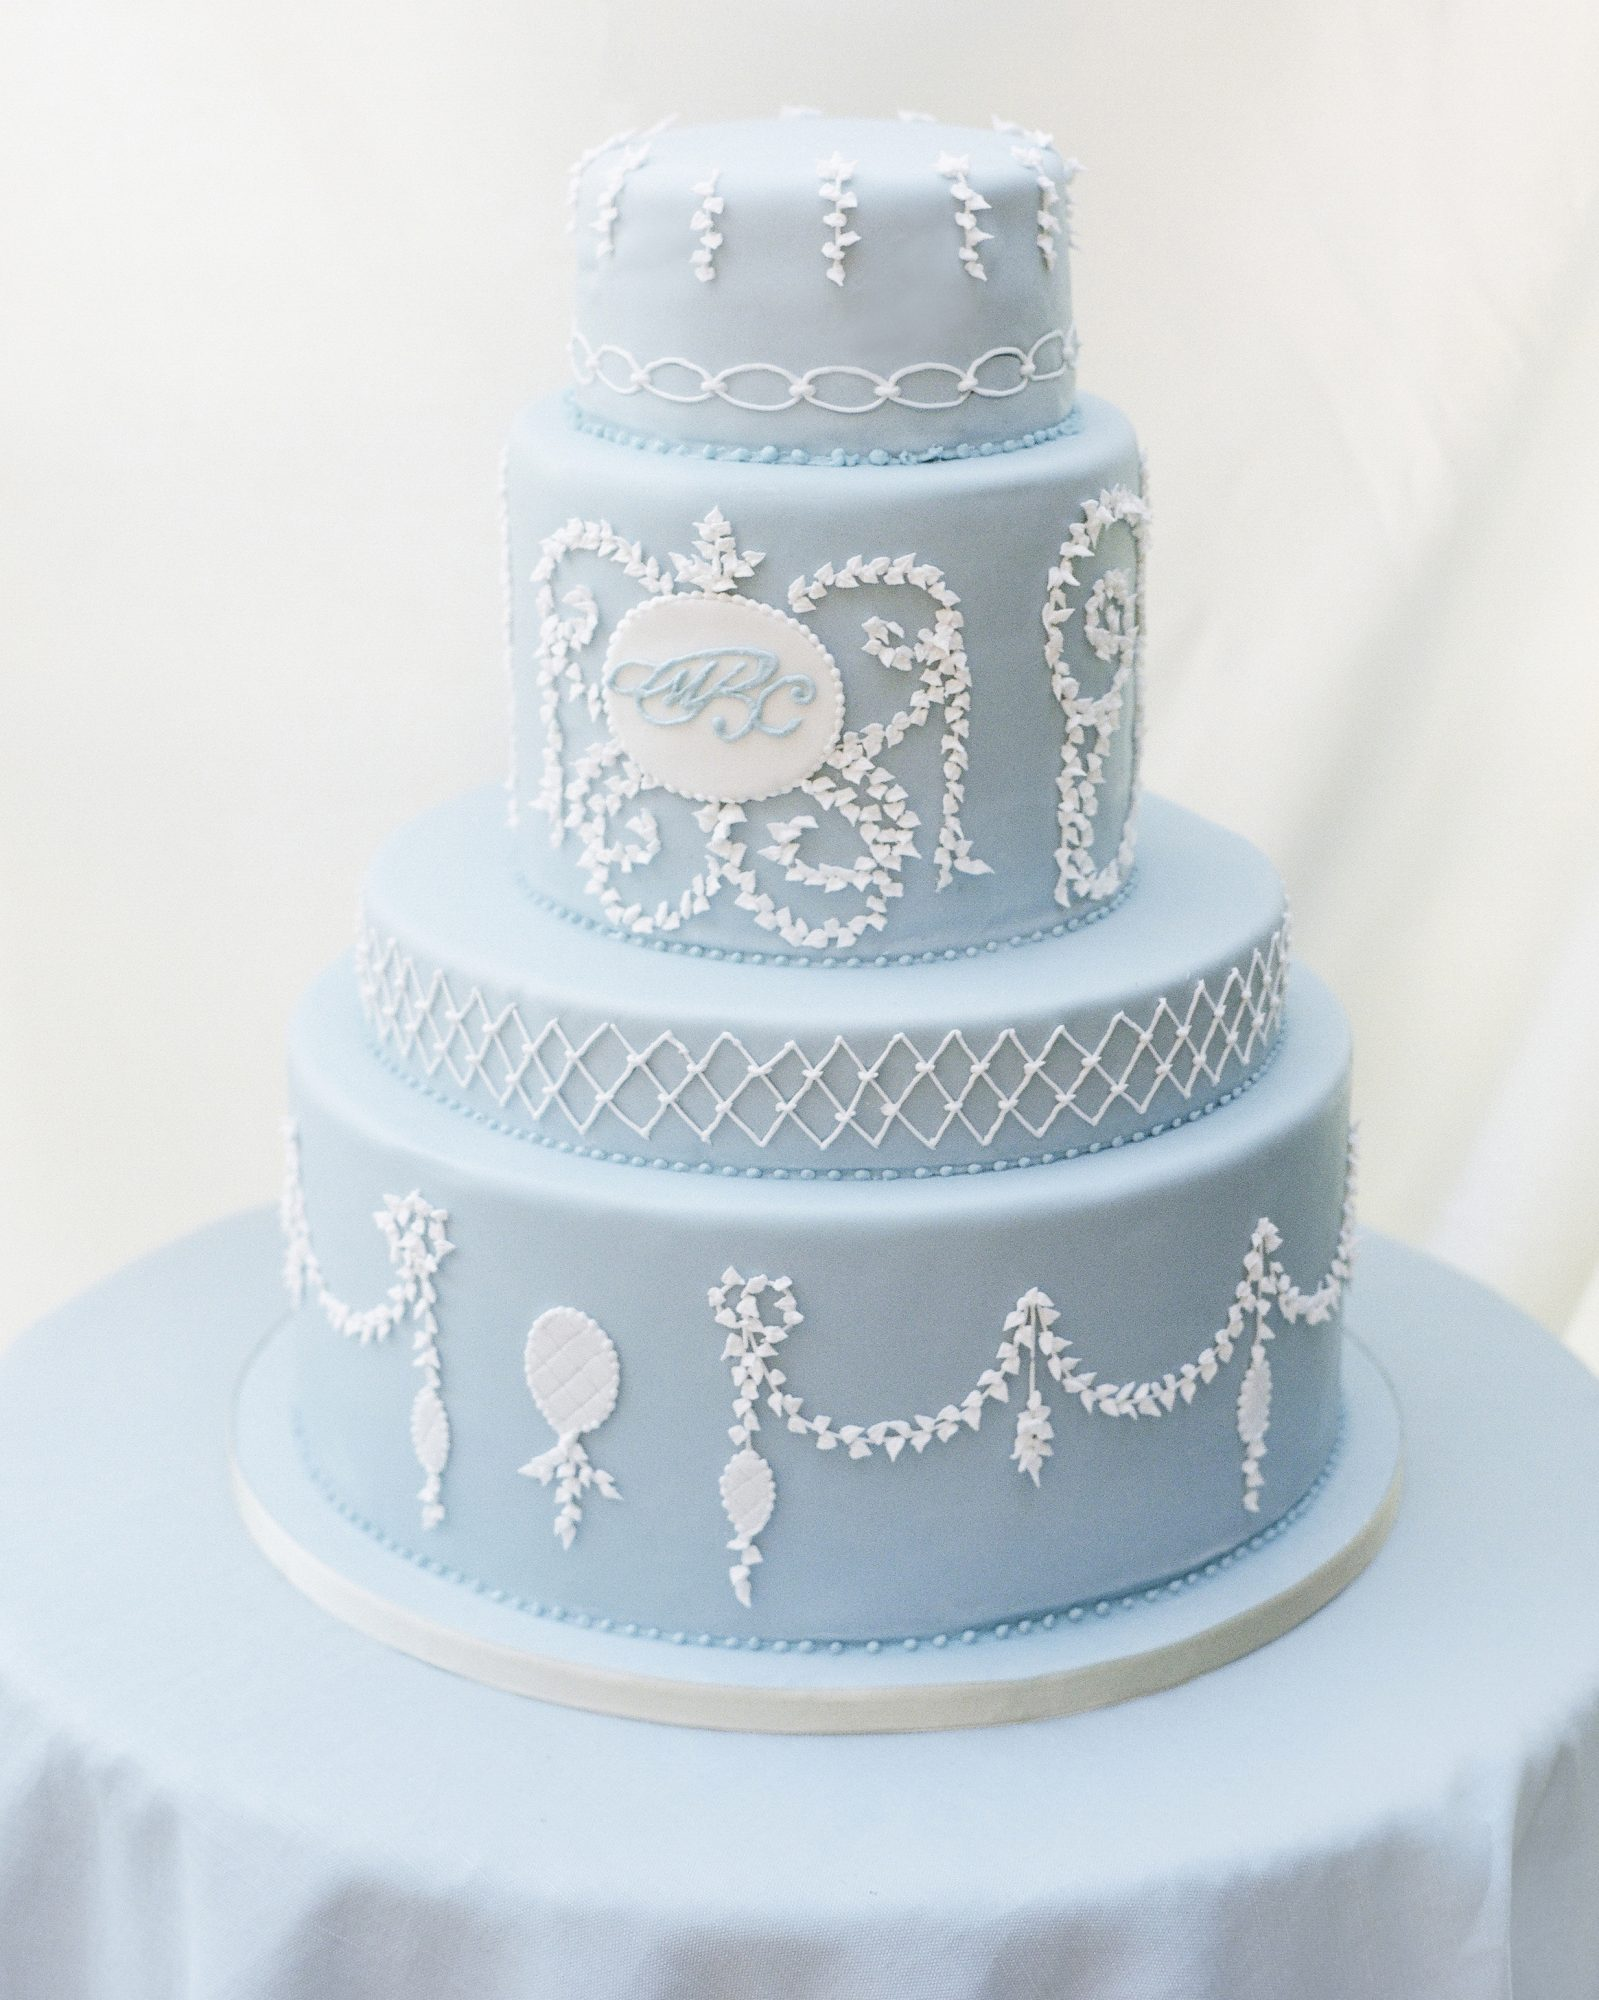 michelle-christopher-positano-reception-cake-details-0953-s111681-0215.jpg